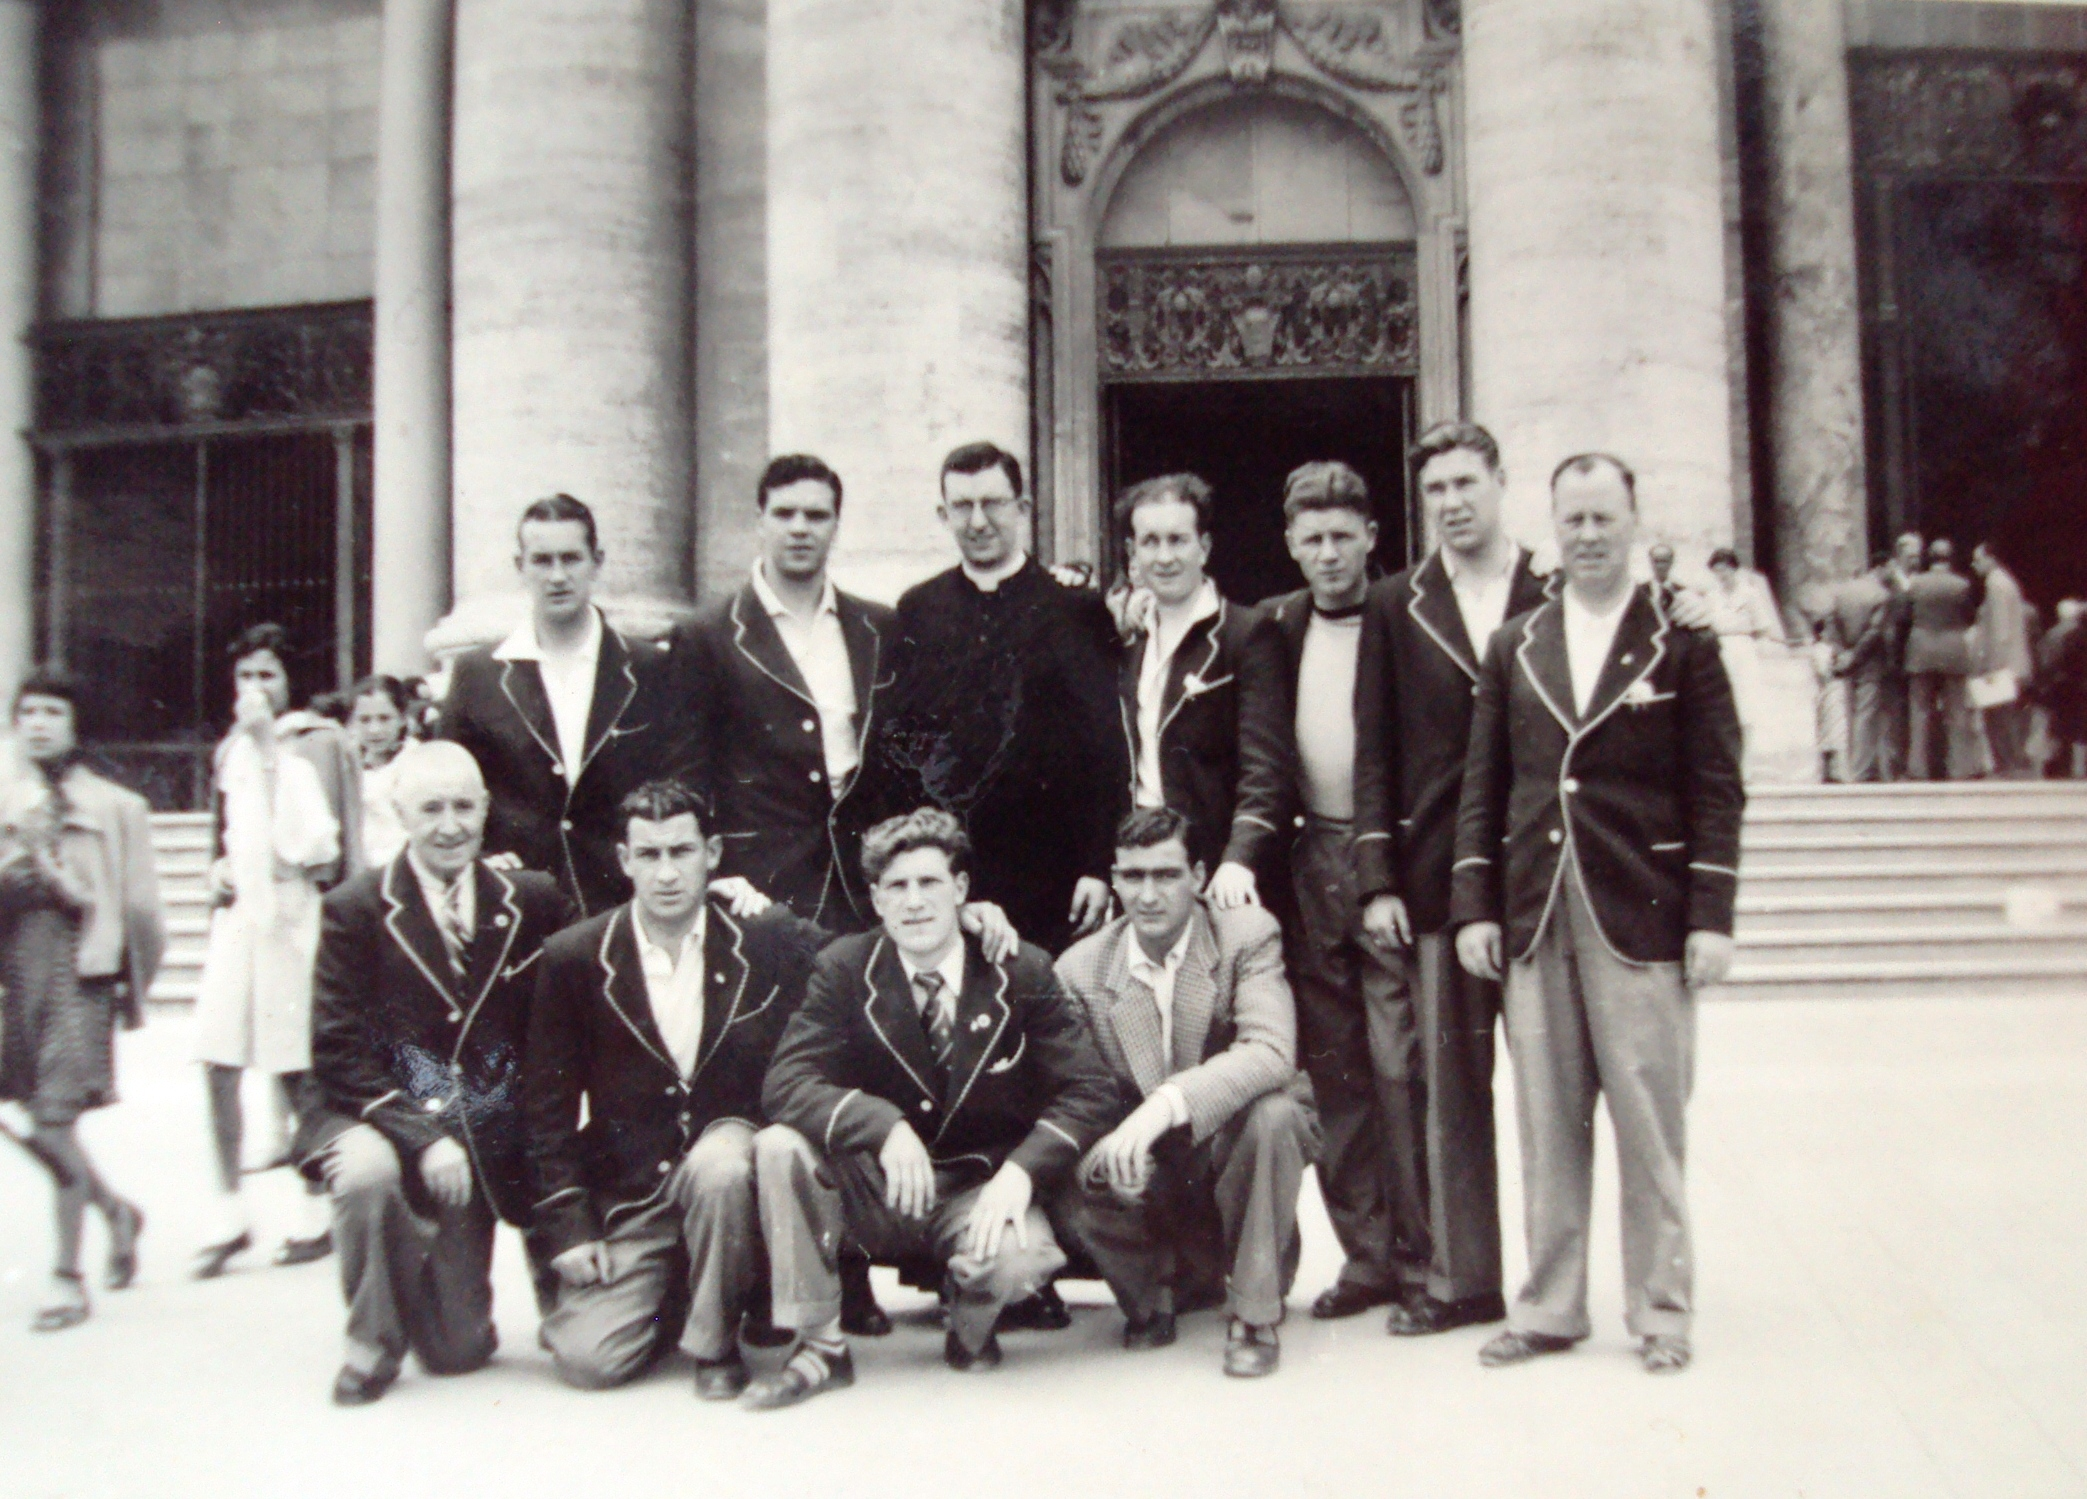 Celtic players and Jimmy Hogan at the Vatican Rome trip 1951